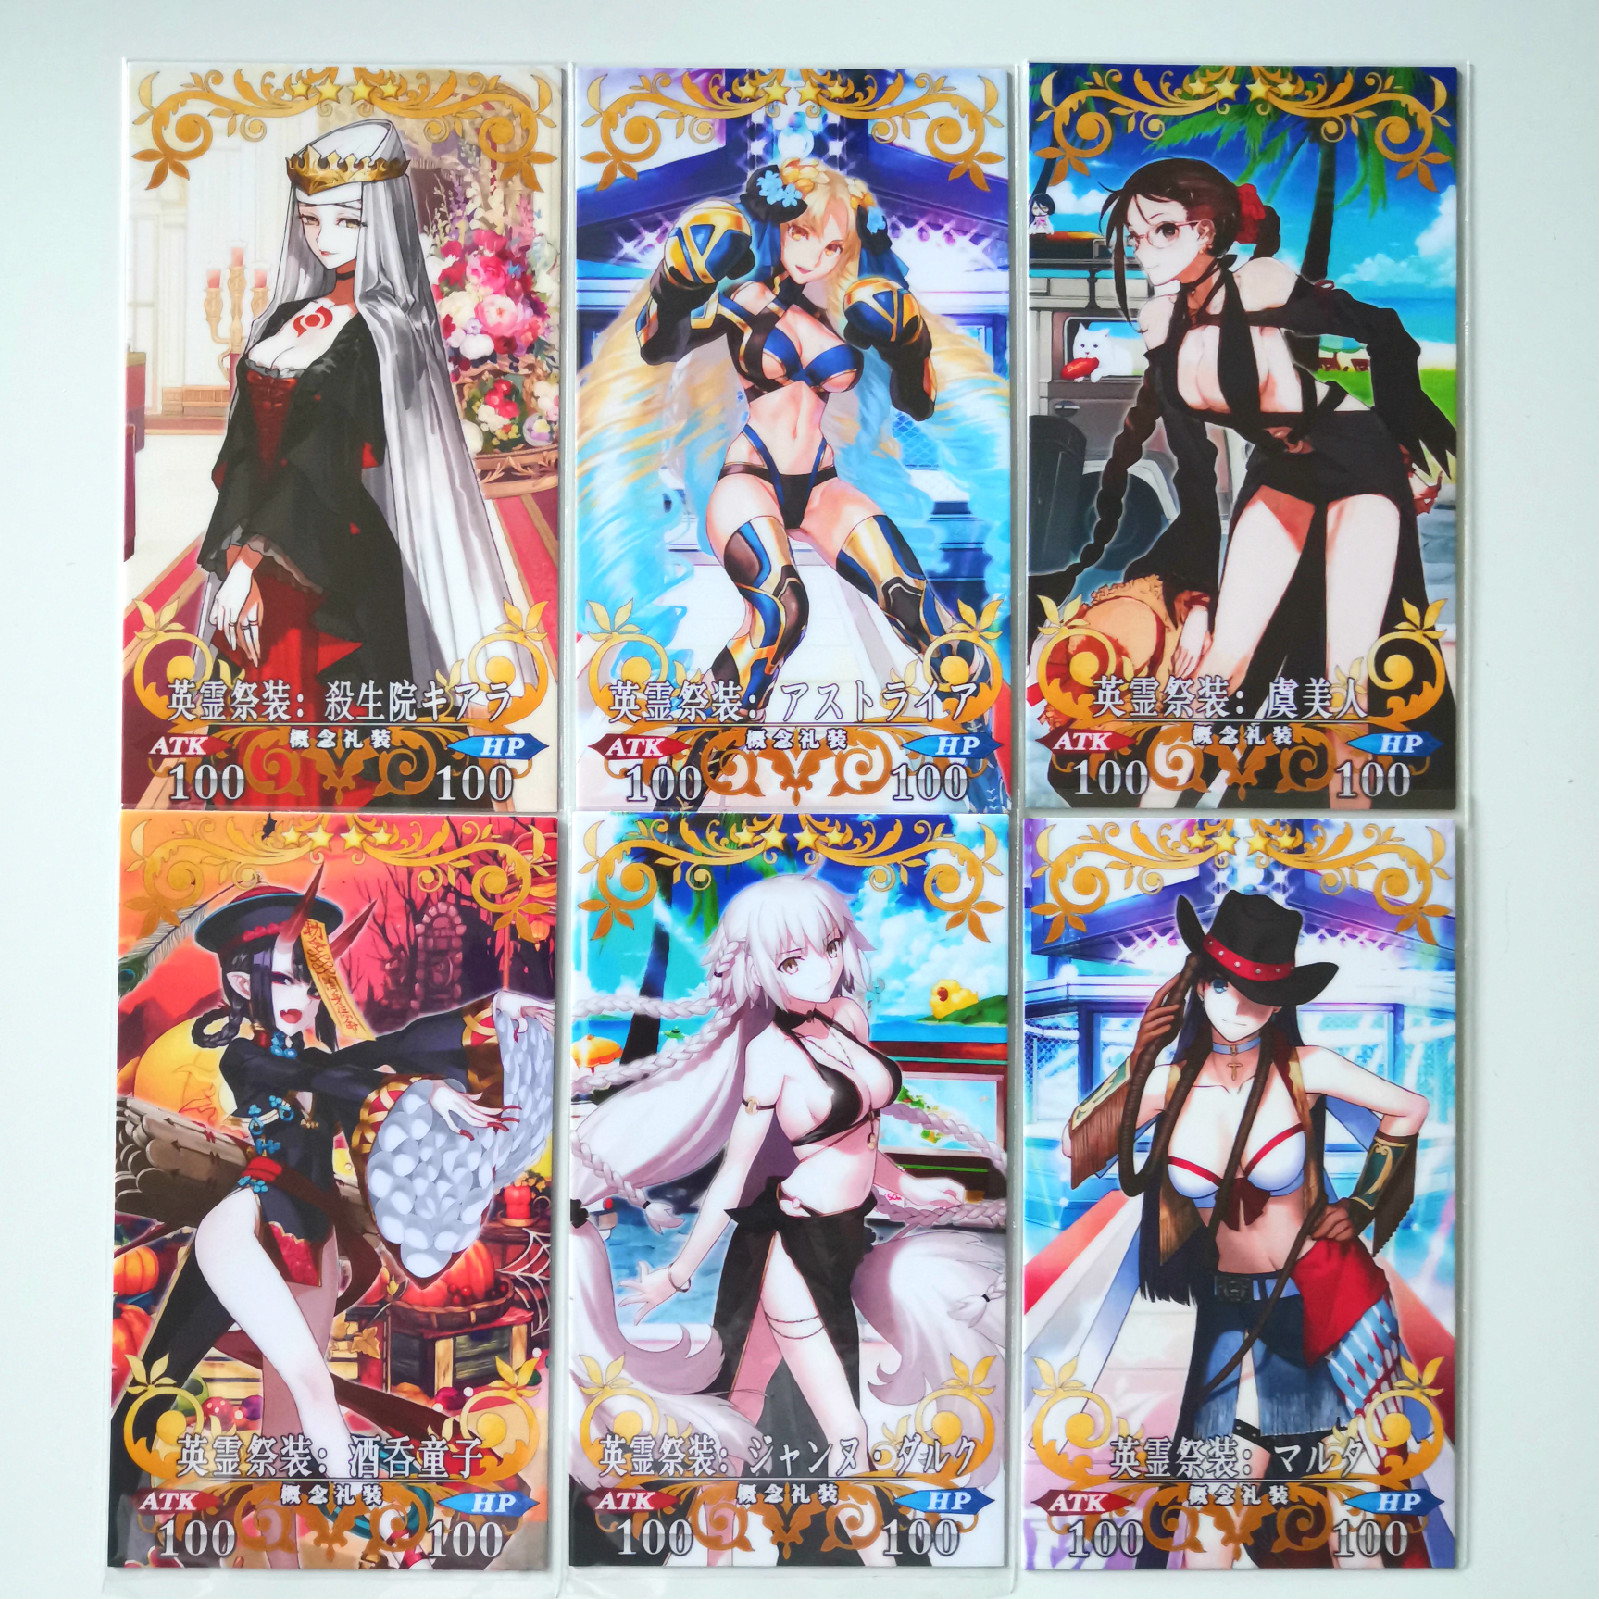 39pcs/set Fate/Grand Order FGO Sacrifice Dress Toys Hobbies Hobby Collectibles Game Collection Anime Cards